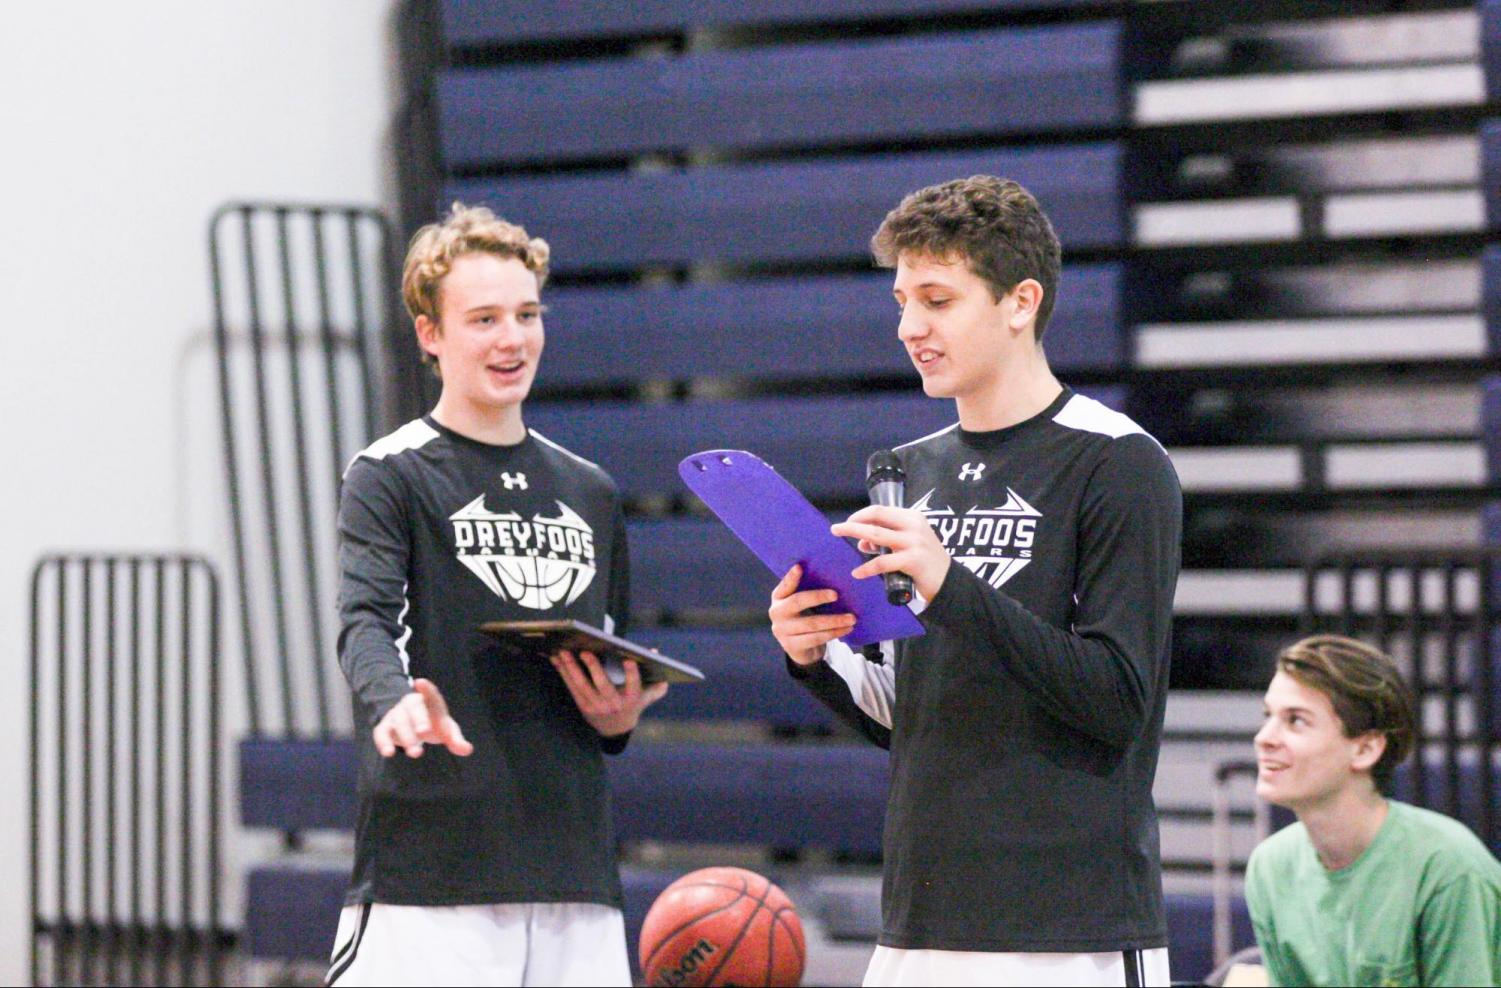 Basketball+team+Co-Captain+and+digital+media+junior+Caleb+Holzhauer+reads+the+names+of+the+seniors+listed+in+front+of+him.+Being+a+rising+senior%2C+Holzhauer+anticipates+next+year+having+%E2%80%9Ca+fresh+start+where+%5Bthe+team%5D+can+have+a+winning+record+and+another+memorable+season.%E2%80%9D